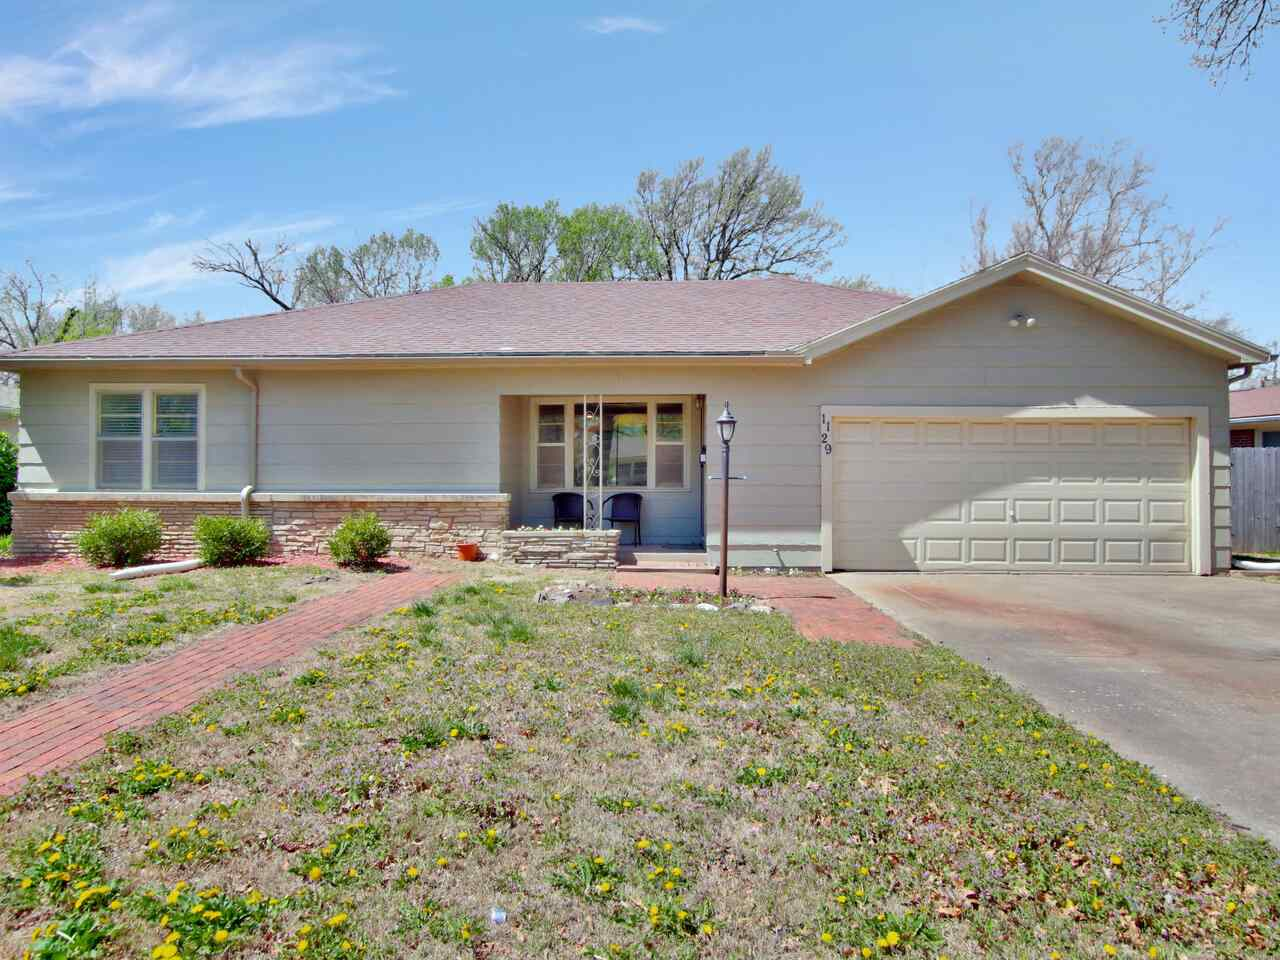 Beautiful, wide-open-concept ranch! Wood flooring throughout sprawling front living room and huge family room space. Gorgeous brick fireplace near wide spacious windows. Bright, white kitchen with eating space, tons of cabinets, and plenty of counterspace for cooking and entertaining! ALL APPLIANCES REMAIN! Main bedroom is unusually large with extensive closet and storage space. Master bathroom is updated with double sinks and corner shower. Hall bathroom is roomy and bright with tub & shower combo. Separate mud room and laundry space right around the kitchen space, next to 2-car garage is more conenient than most homes! Large, fully-fenced backyard with mature trees for shade and nice brick patio for relaxing any time of day... You'd better see this home today!